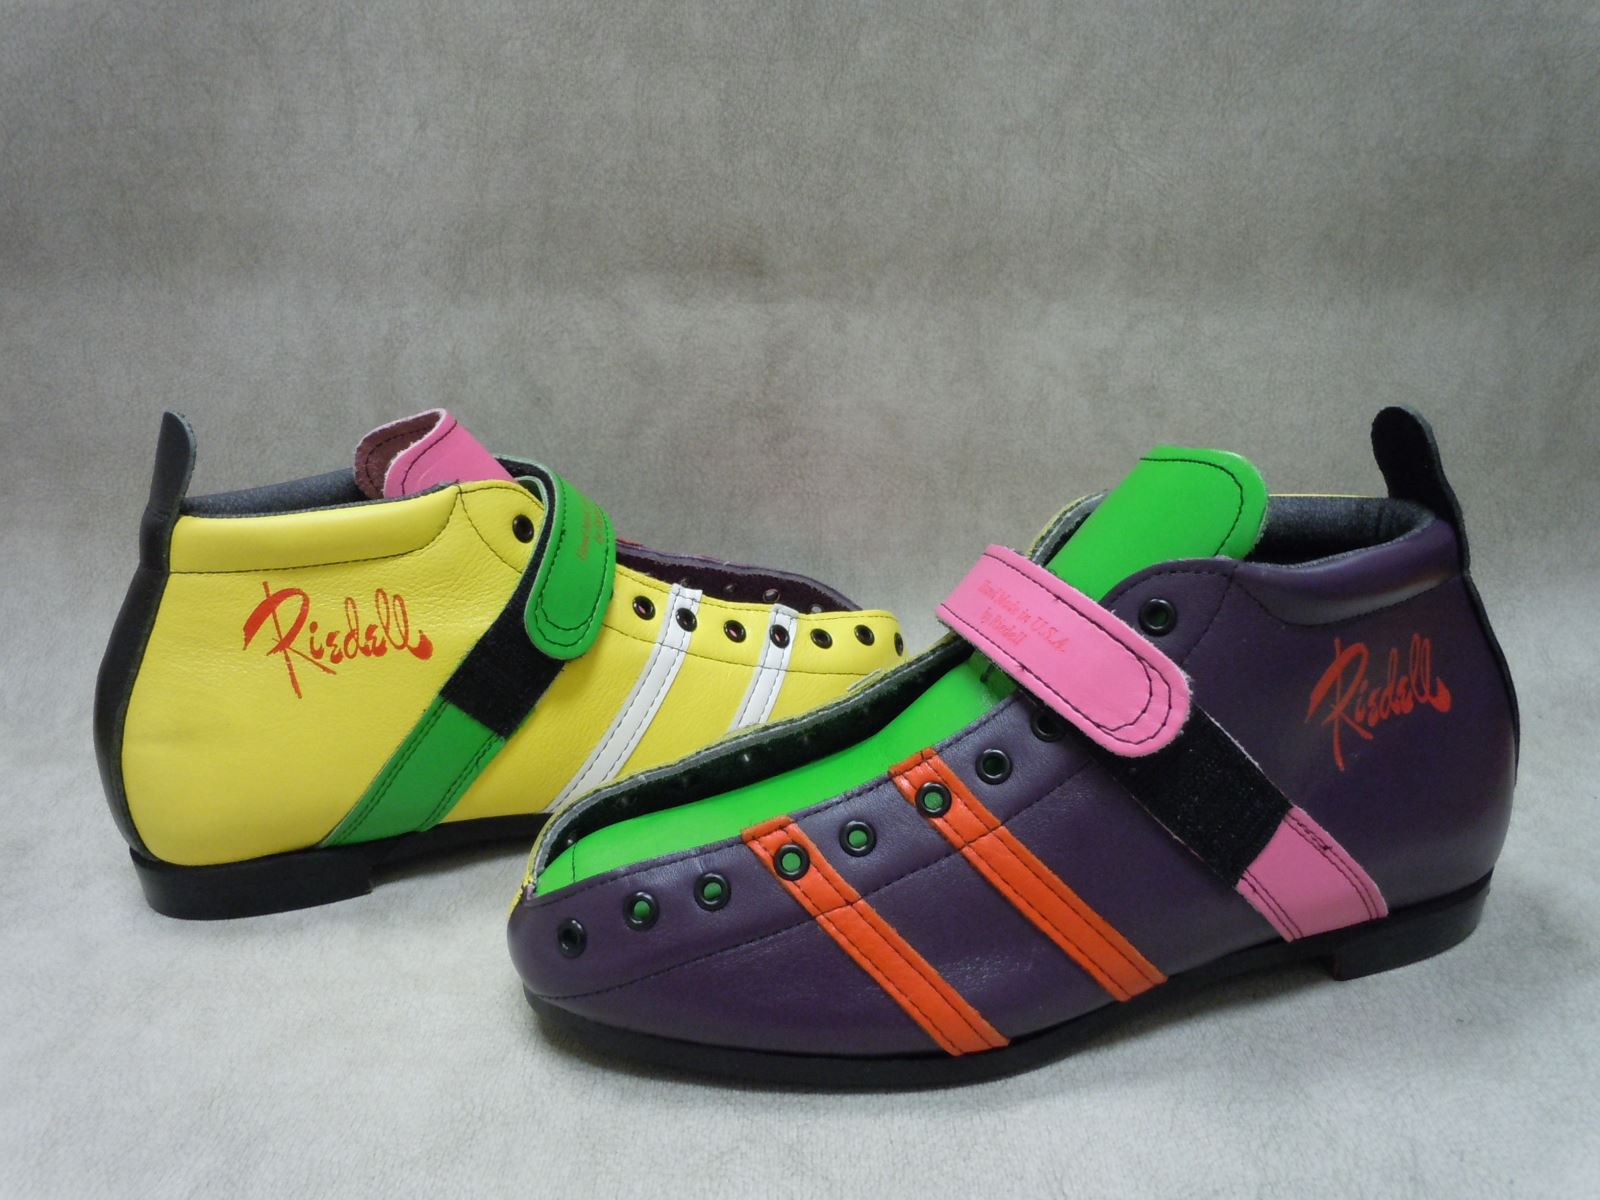 Riedell ColorLab Boot - Model 265 with Yellow, Green, Purple, and Pink Leather